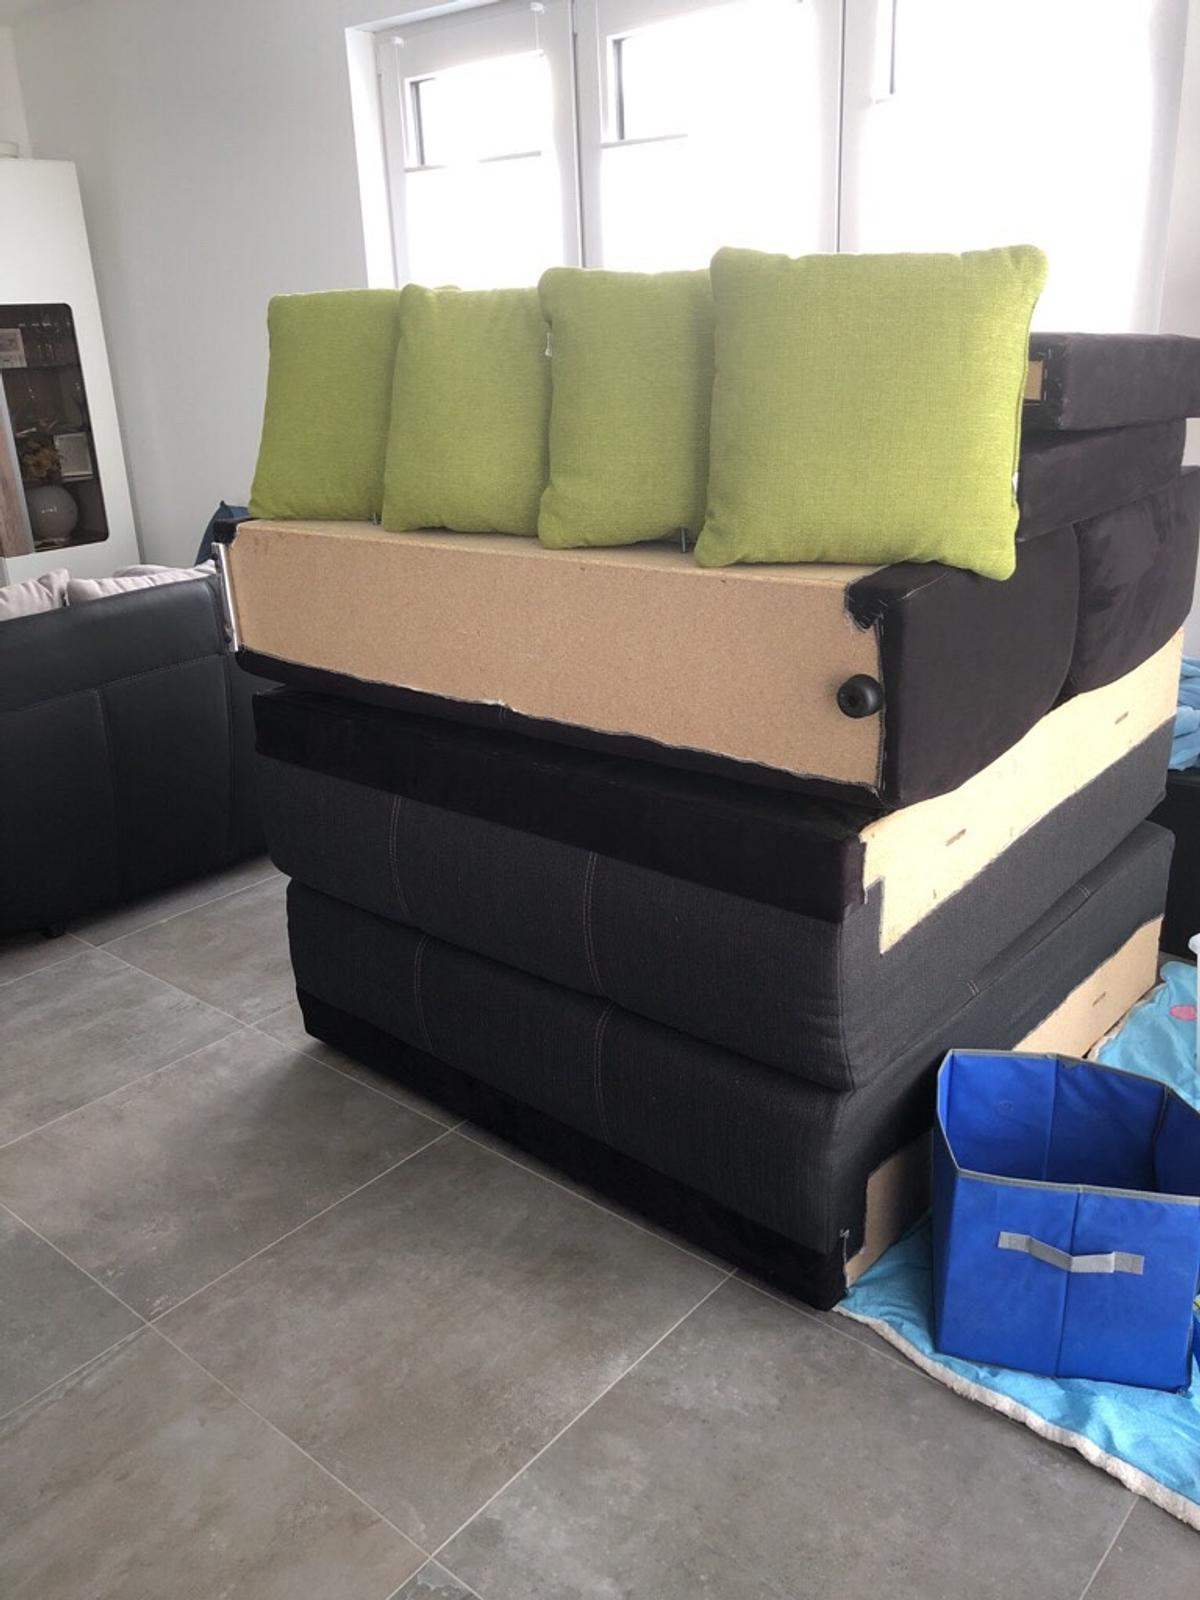 Xxl Sofa Bei Otto Xxl Sofa In 53919 Weilerswist For 349 00 For Sale Shpock